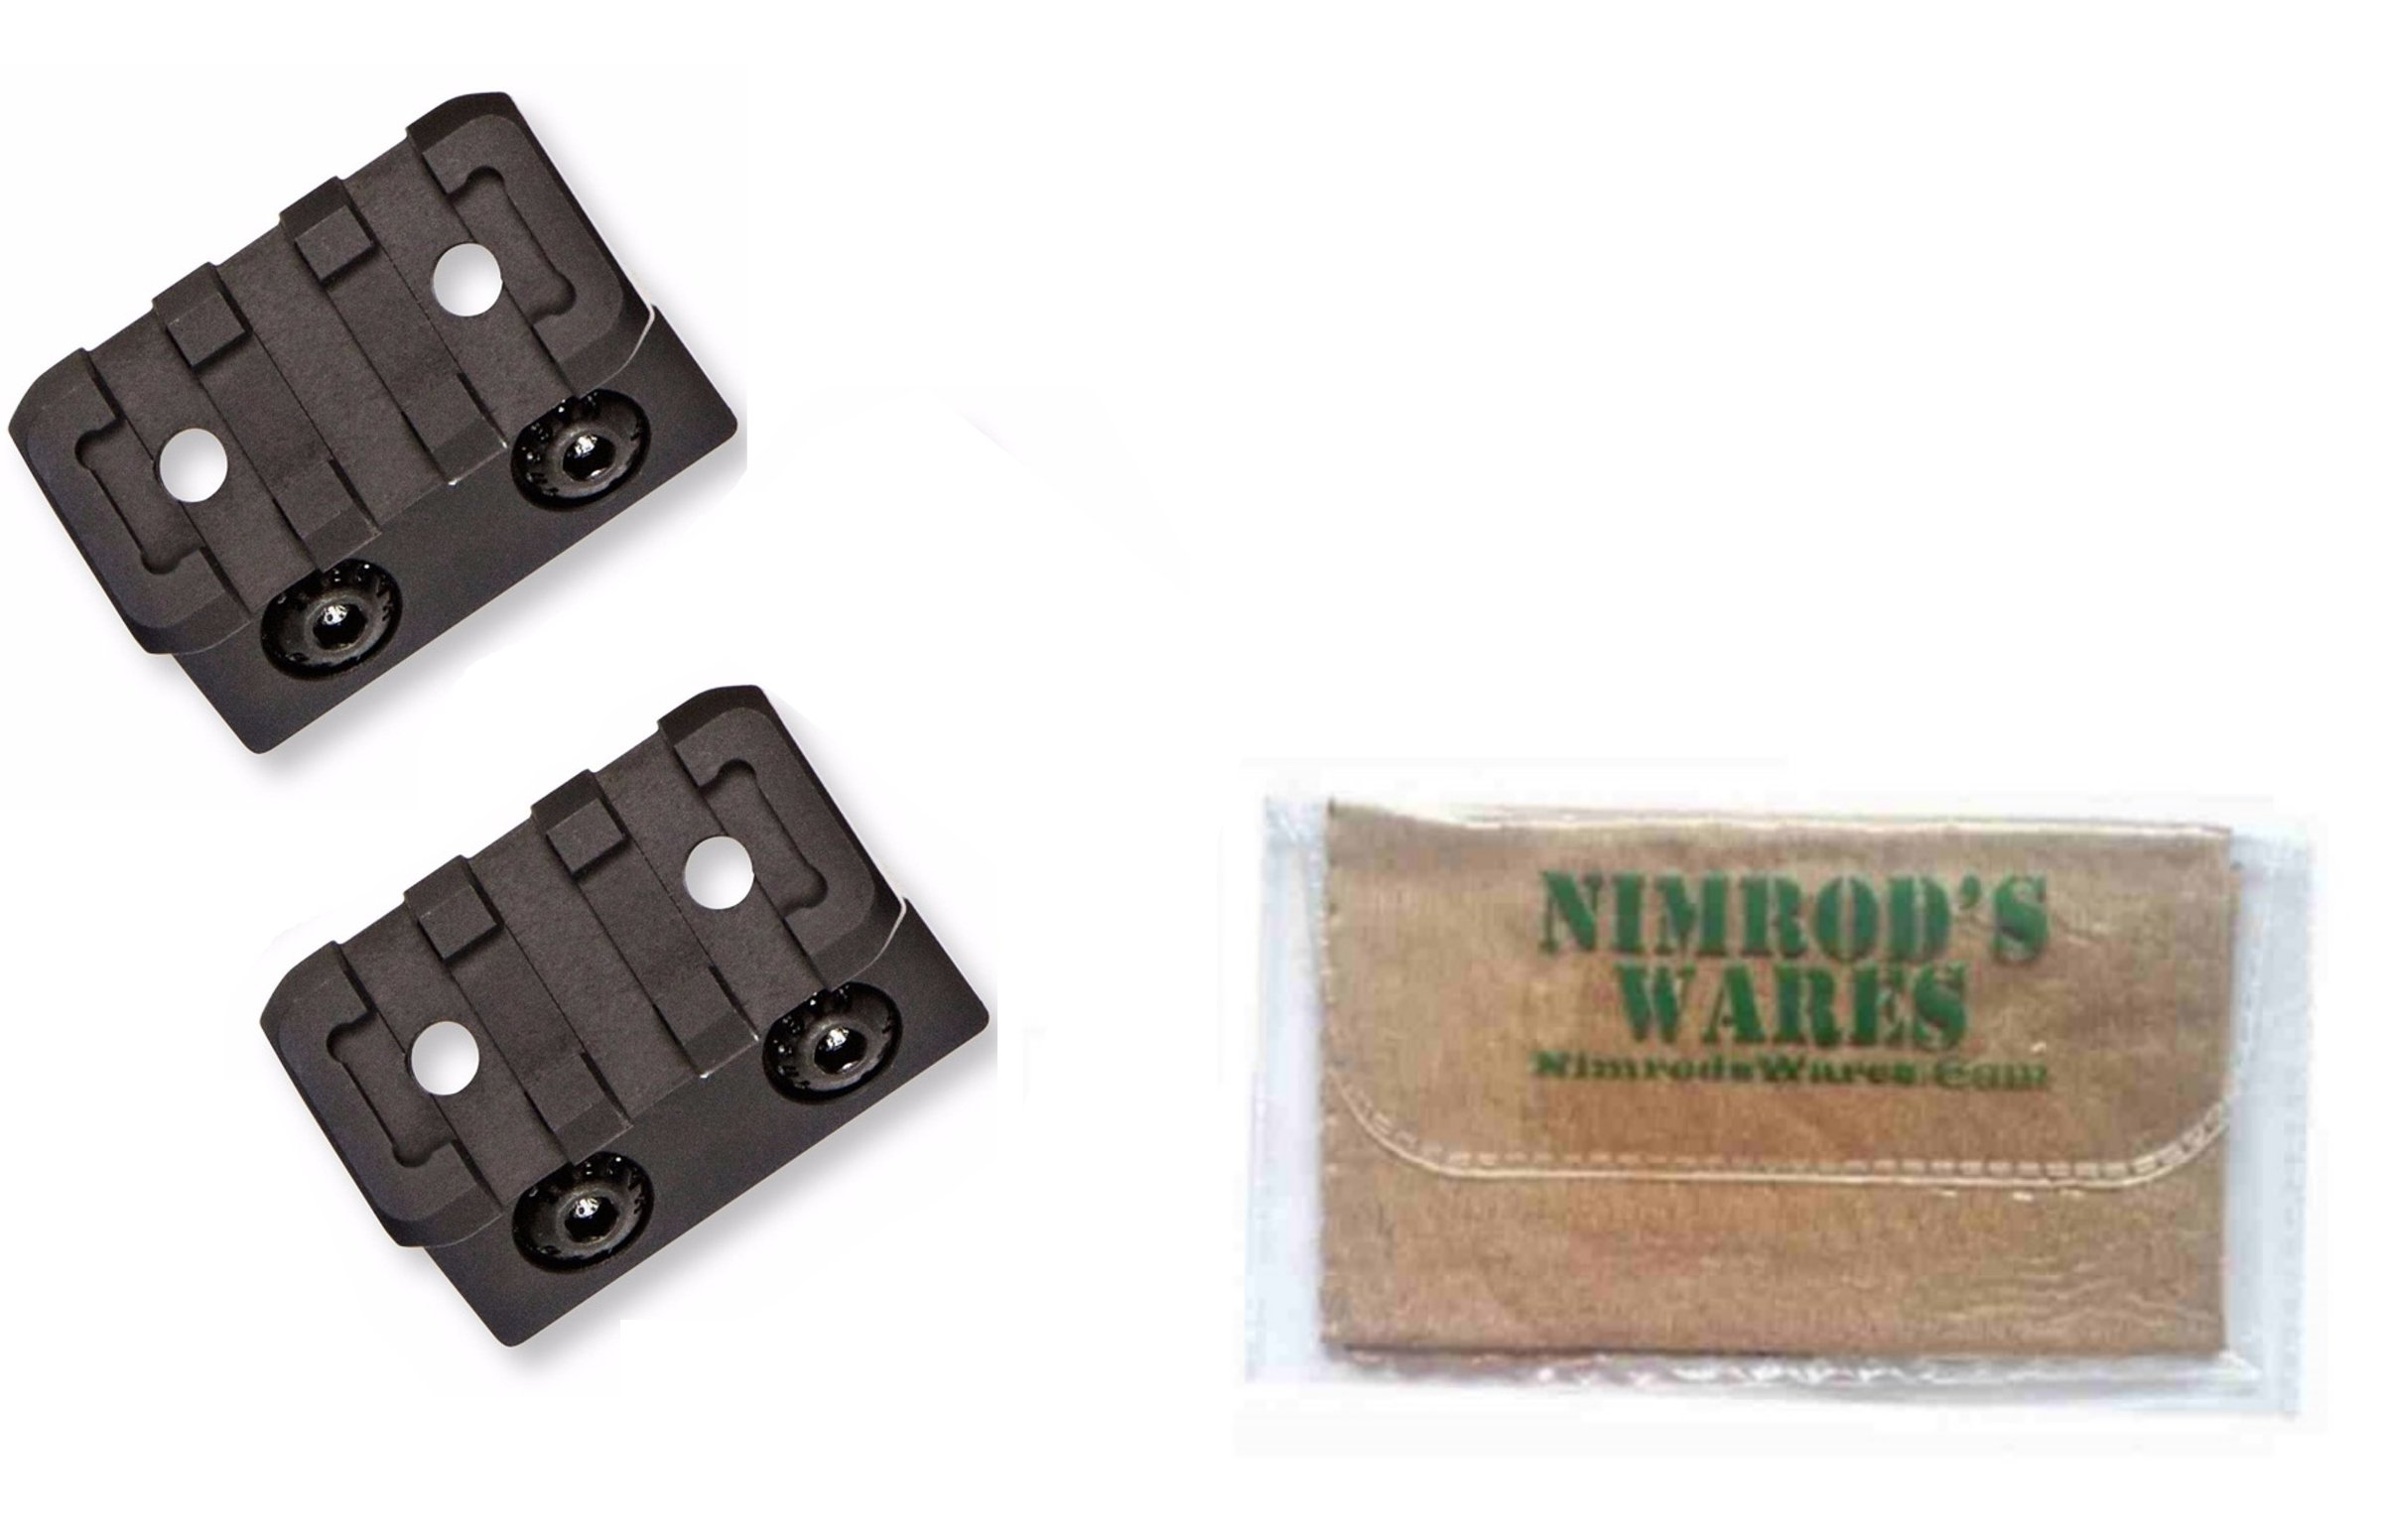 Magpul 2-Pack Offset Light/Optic Mounts M-LOK Aluminum MAG604 + Nimrod's Wares Microfiber Cloth by Magpul